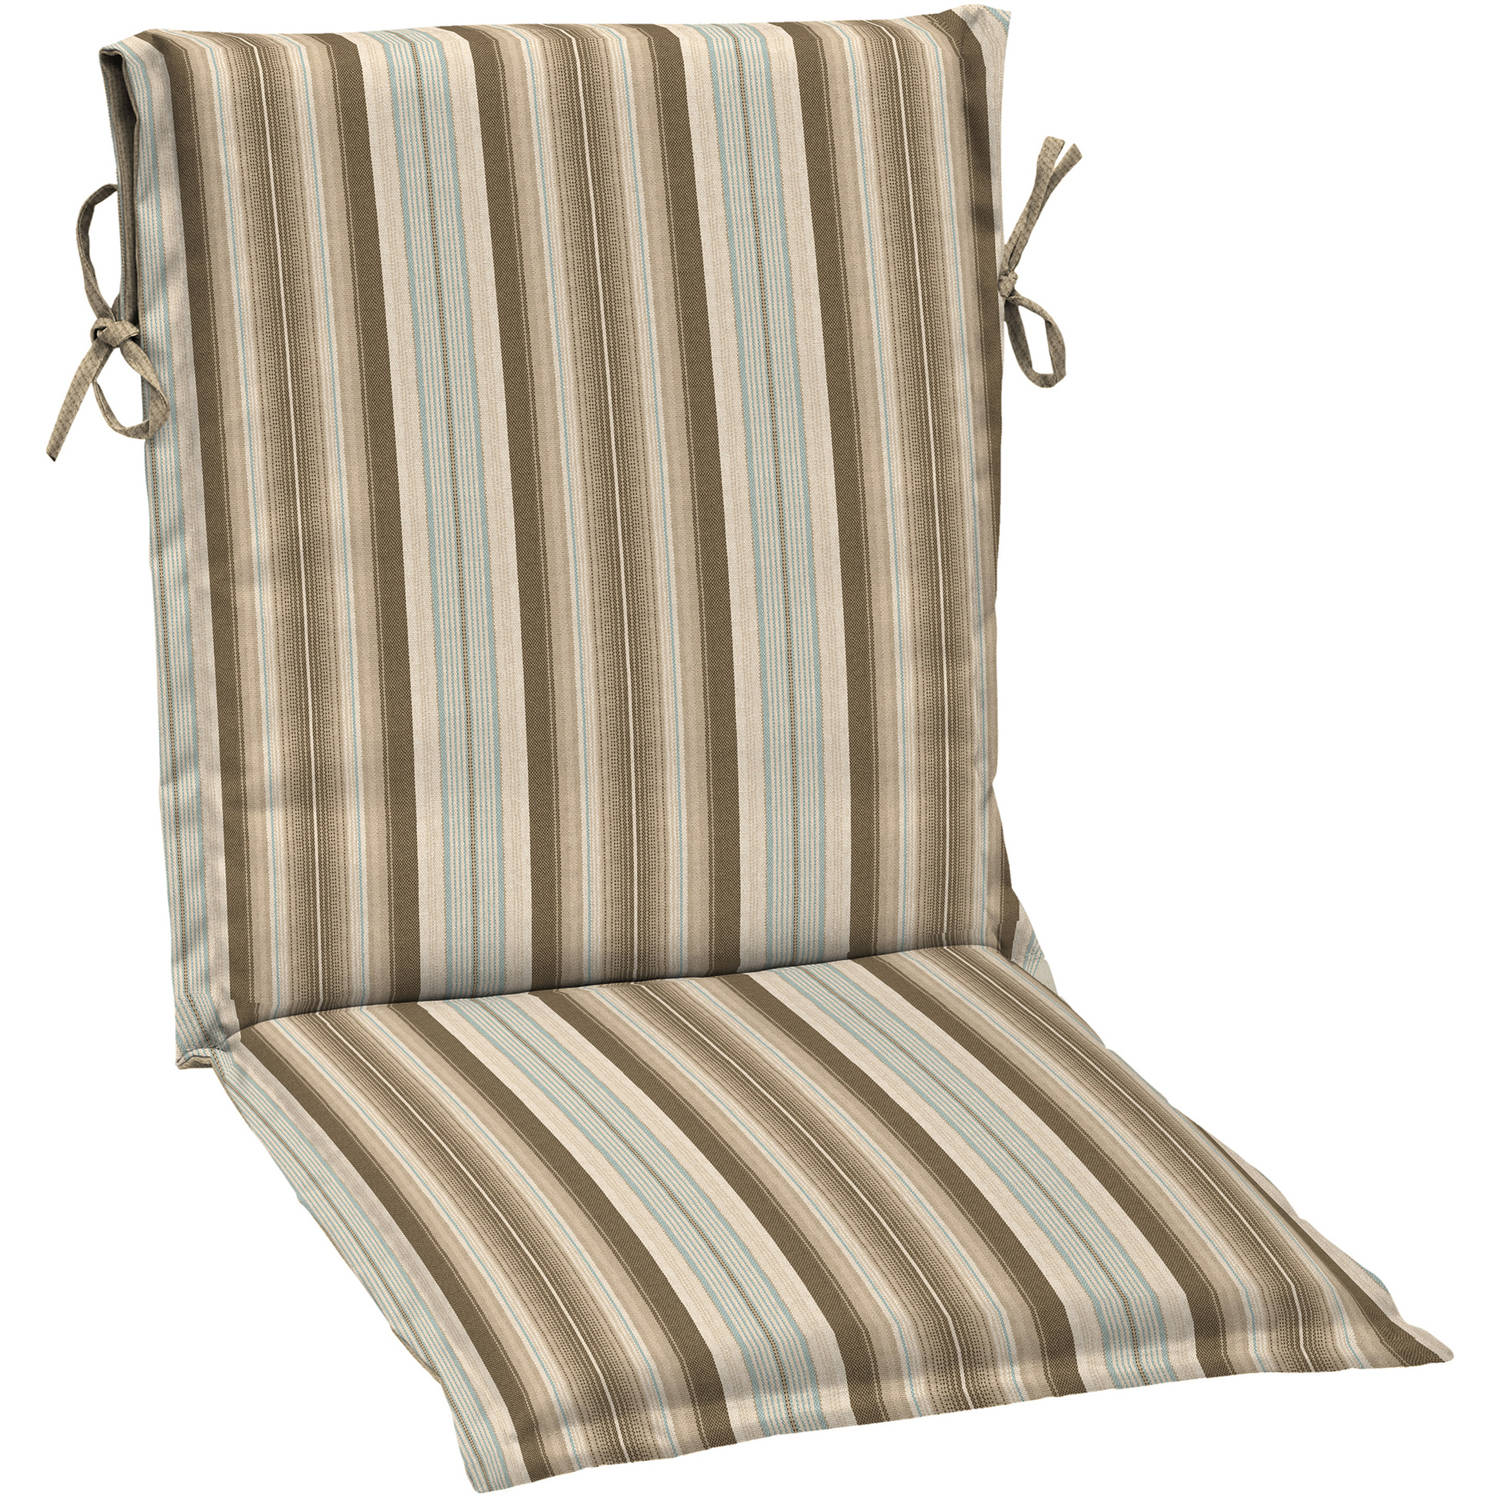 Home And Garden Patio Chair Cushions Garden Design Ideas